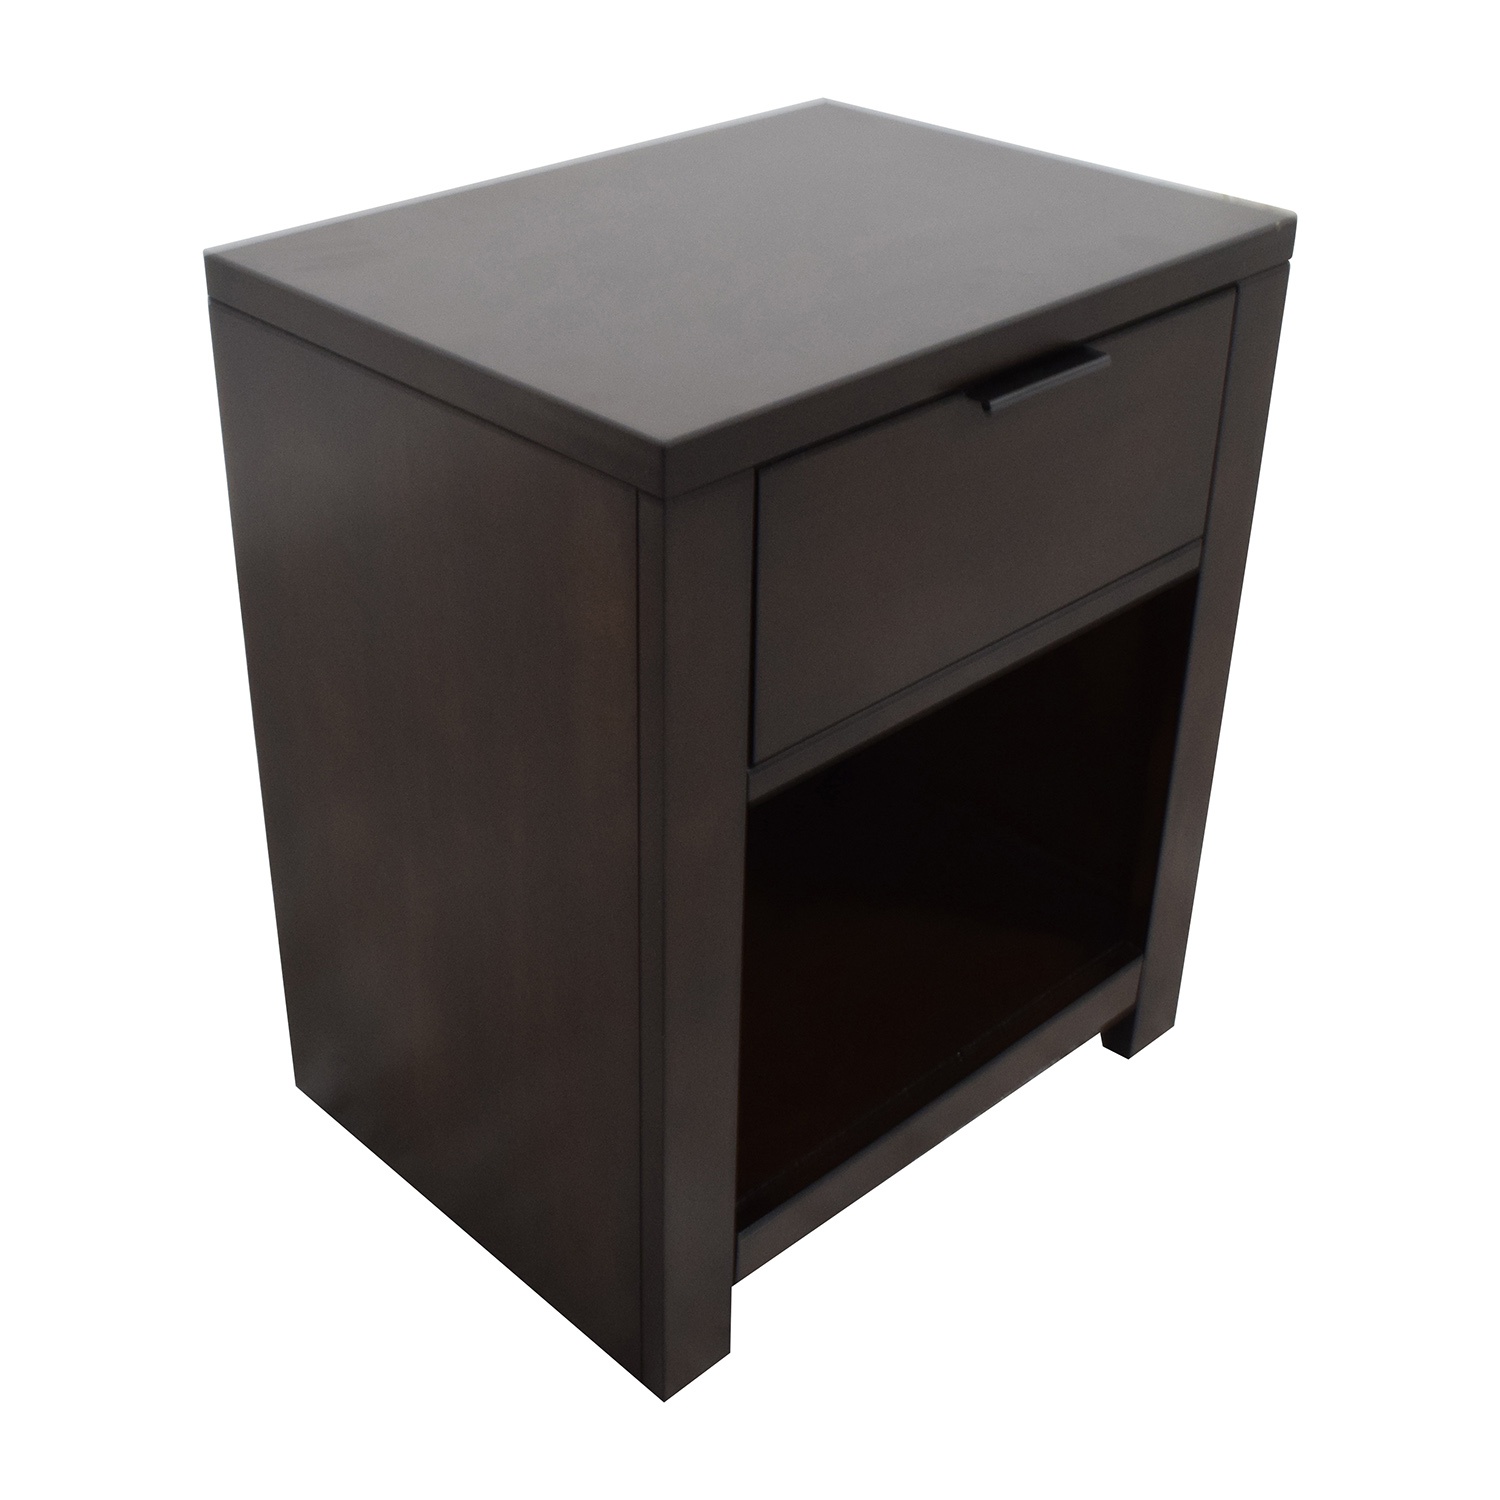 Macys Macys Tribeca Nightstand in Mocha on sale